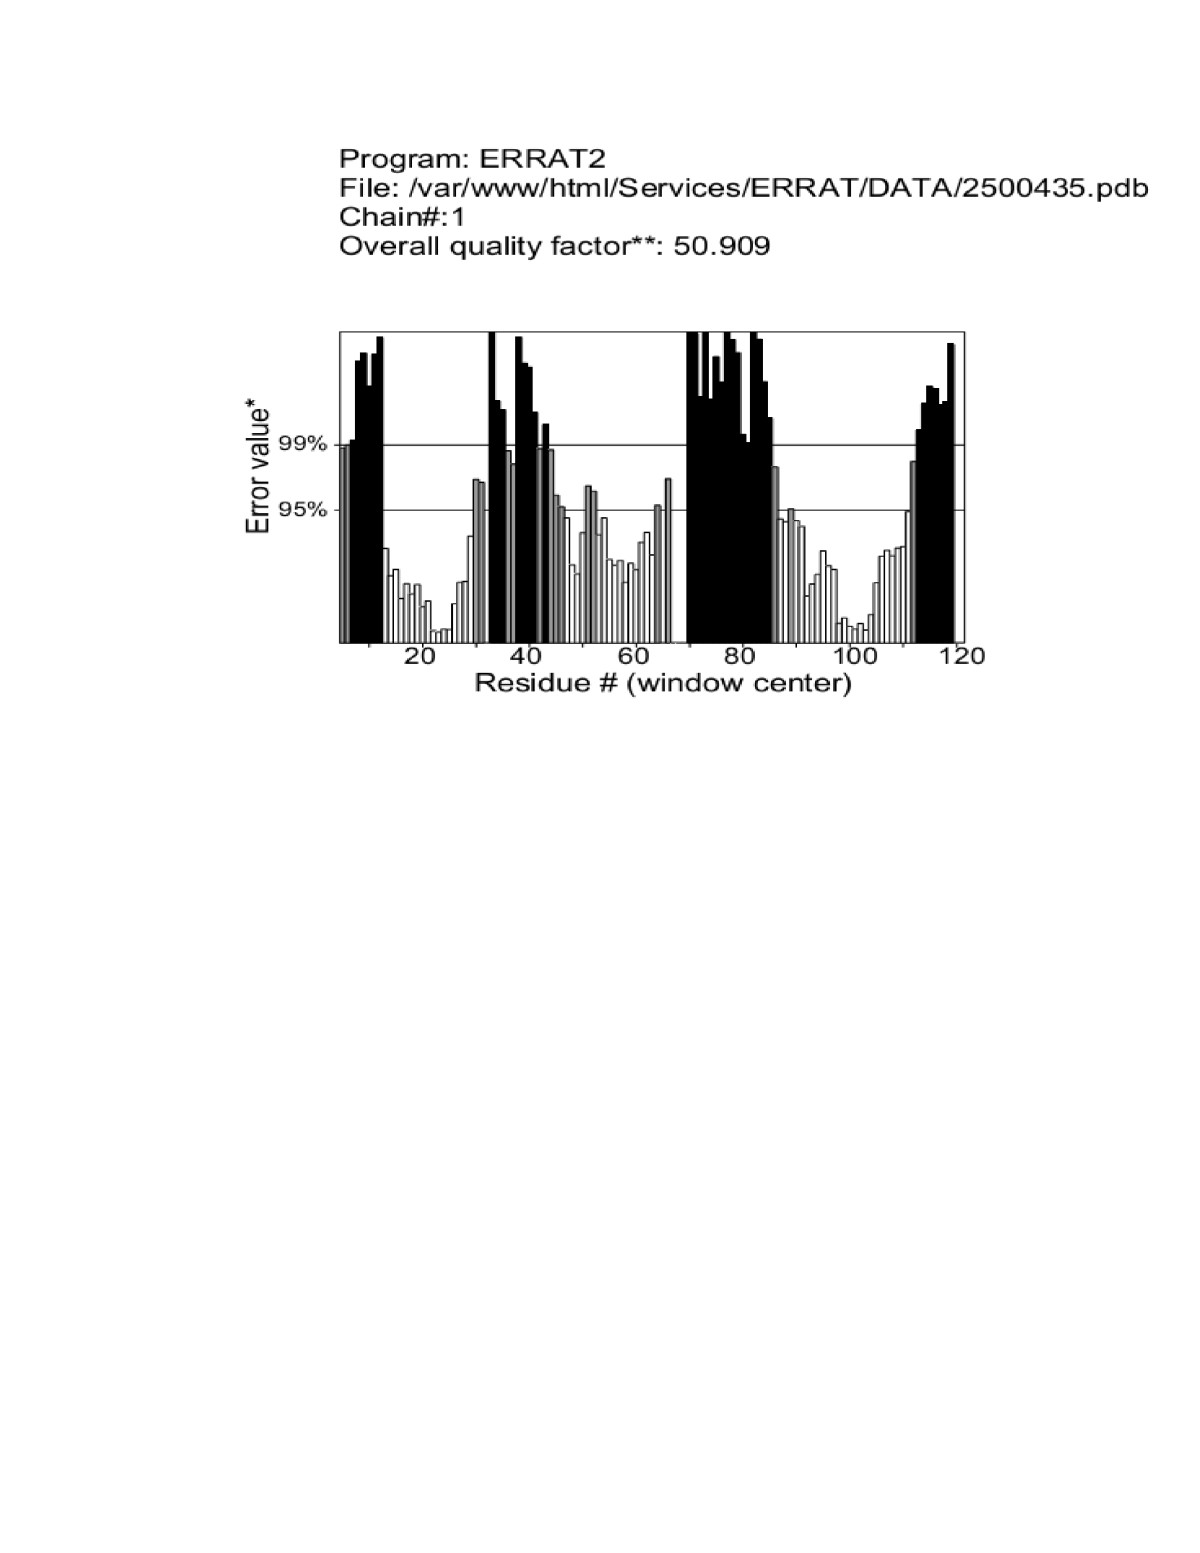 http://static-content.springer.com/image/art%3A10.1186%2F1742-4682-10-3/MediaObjects/12976_2012_Article_365_Fig3_HTML.jpg